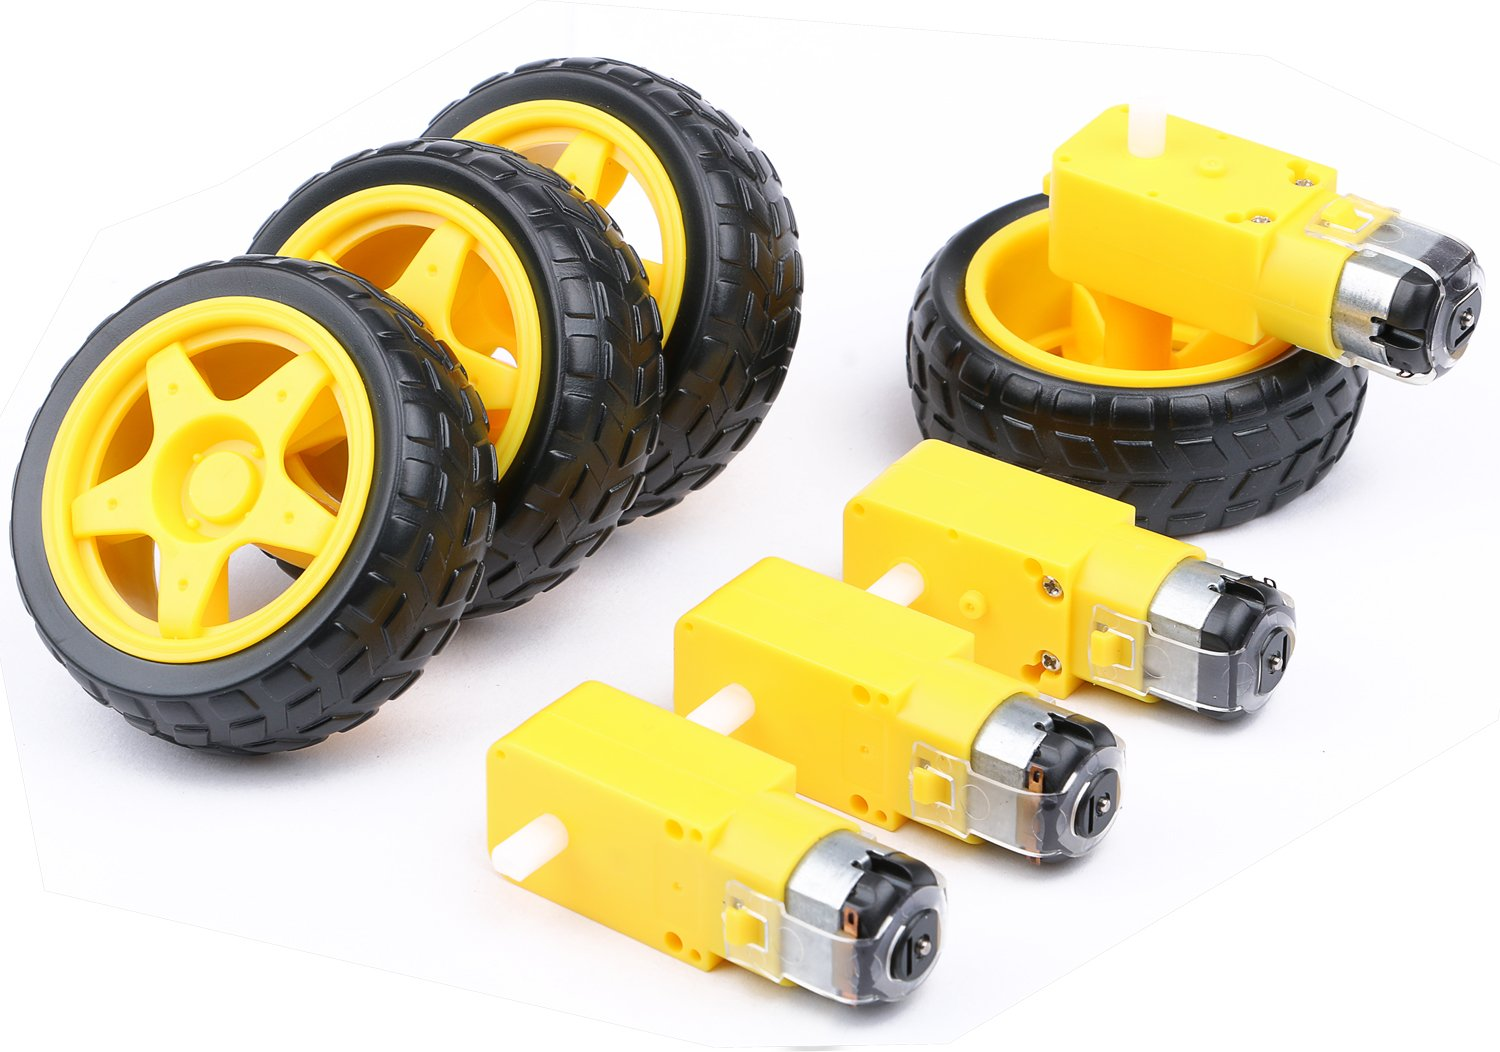 4PCs DC Electric Motor 3-6V Dual Shaft Geared TT Magnetic Gearbox Engine with 4Pcs Plastic Toy Car Tire Wheel, Mini Φ67mm Smart RC Car Robot Tyres Model Gear Parts, Yeeco by Yeeco (Image #2)